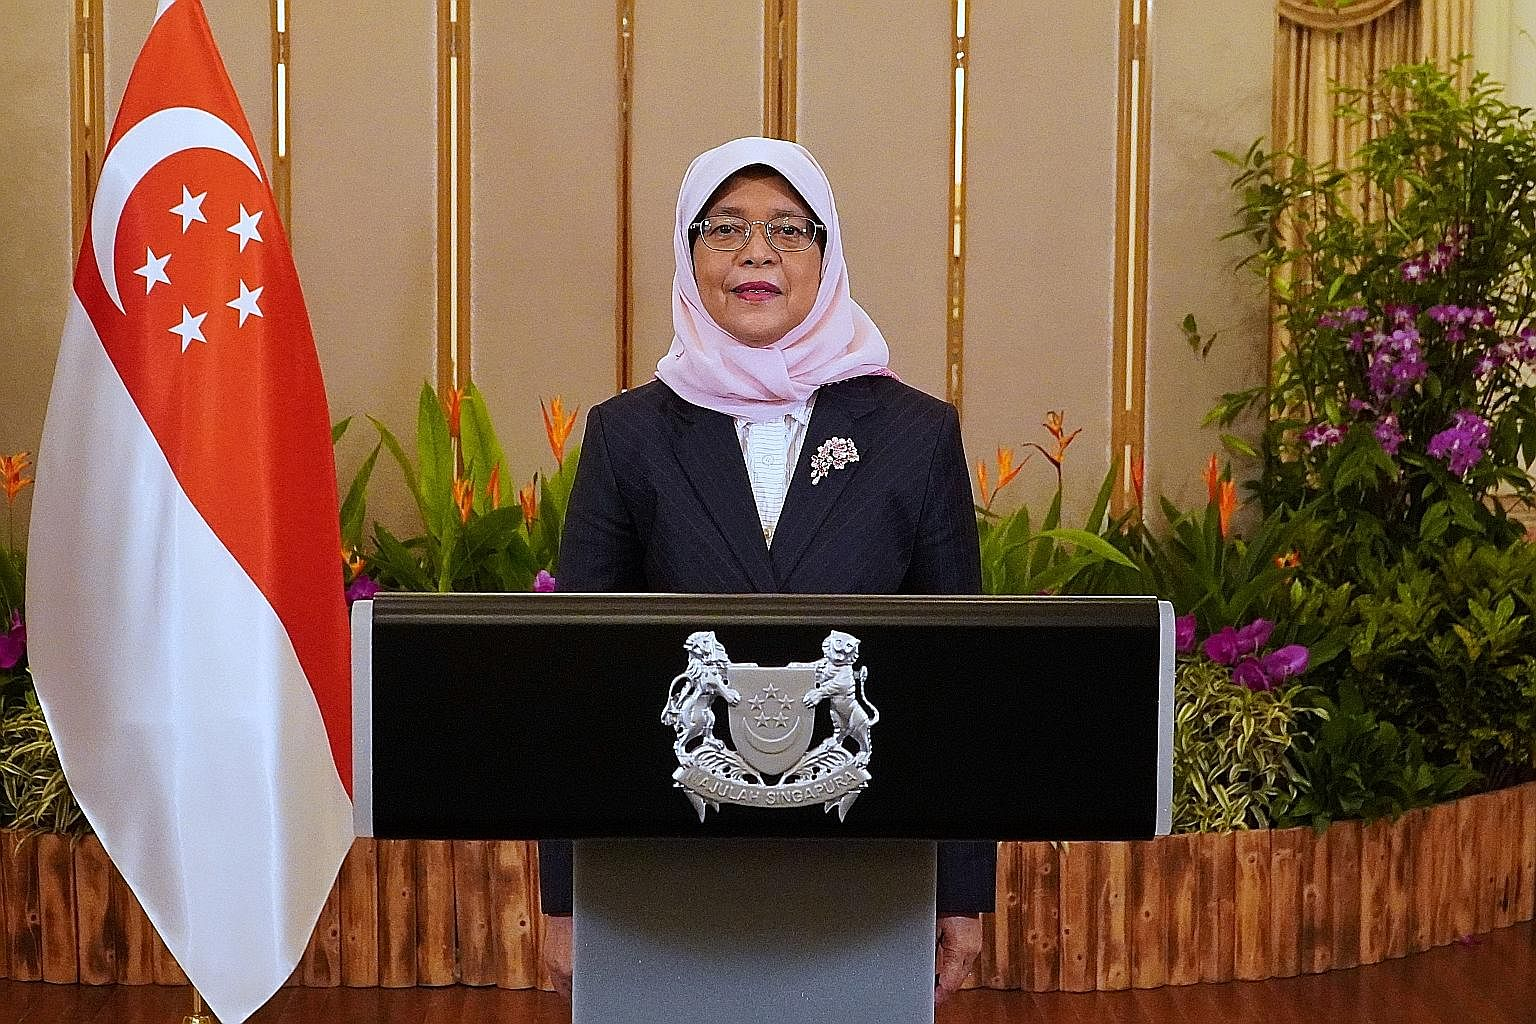 President Halimah Yacob, speaking during the first day of the virtual United Nations Global Compact Leaders Summit, said sustainability has always been an integral part of Singapore's development journey.